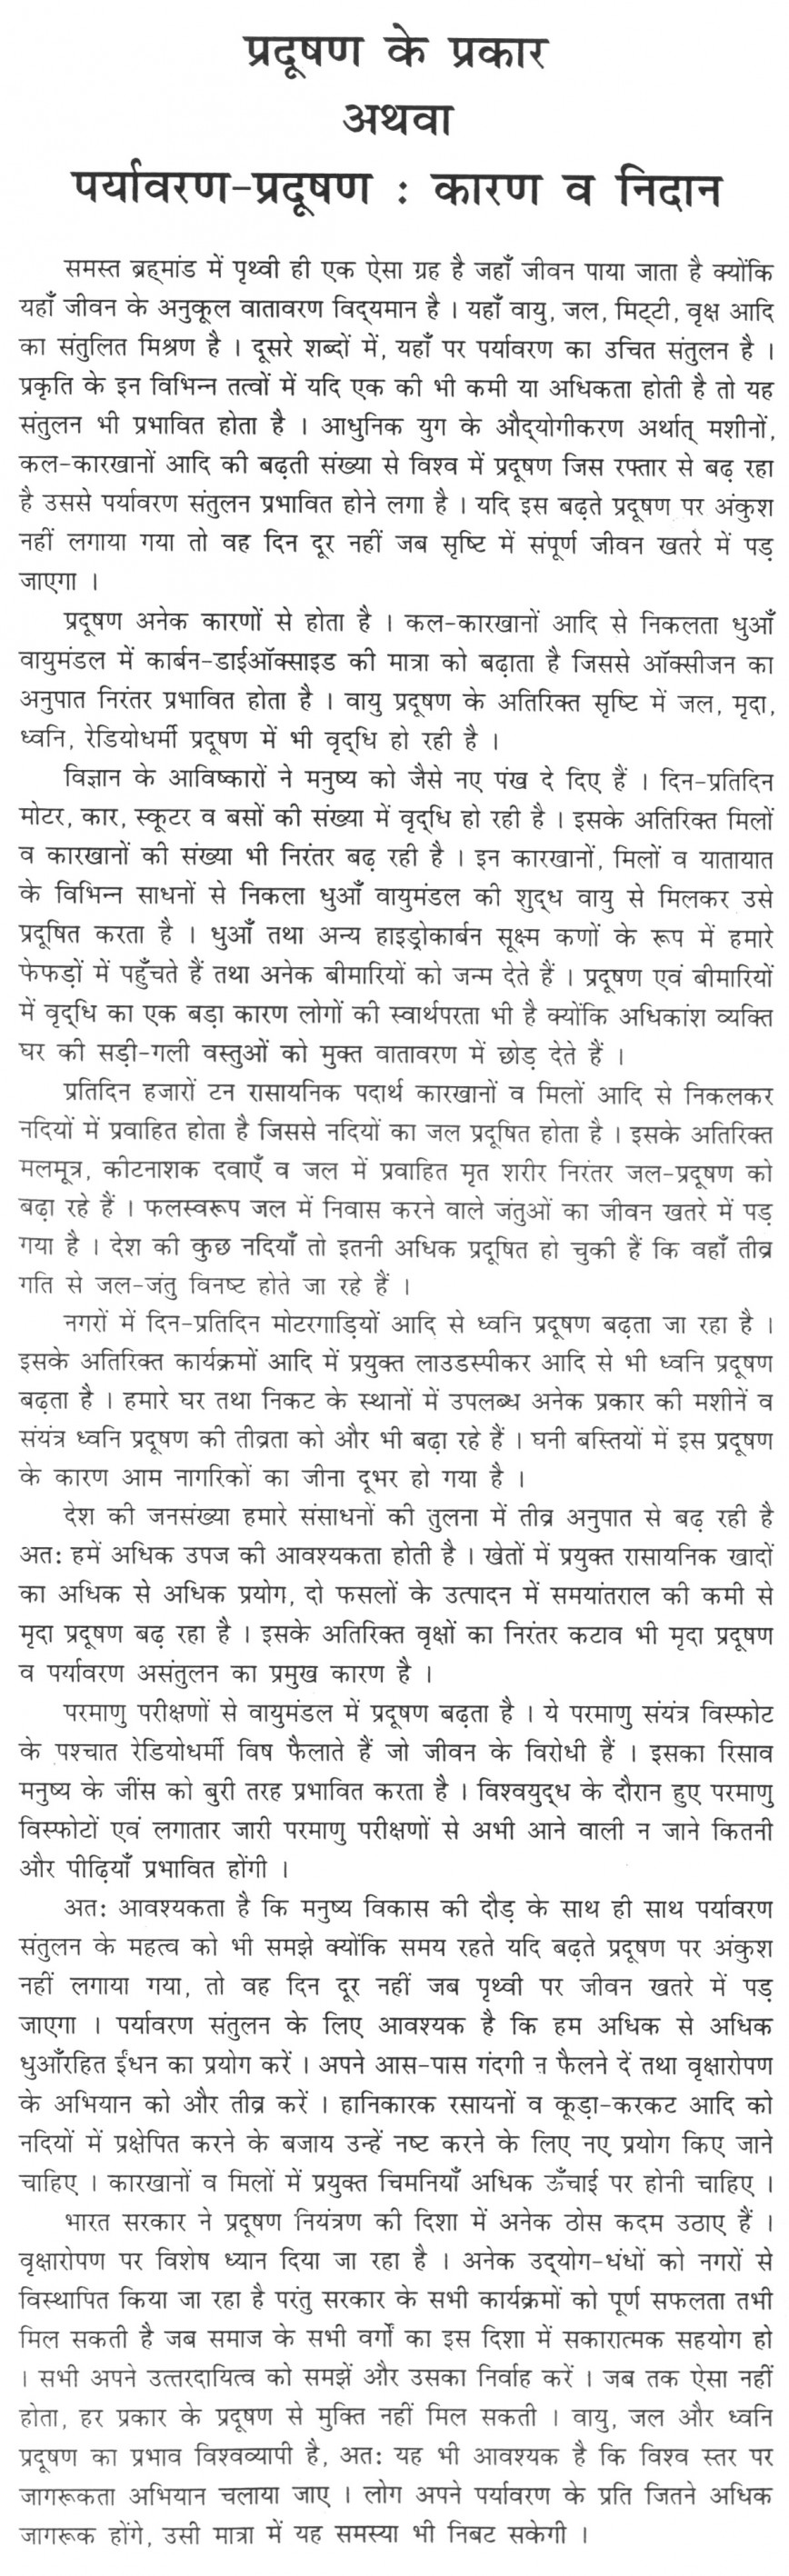 014 Good Habits Essay In Hindi Exceptional And Bad Healthy Eating 868